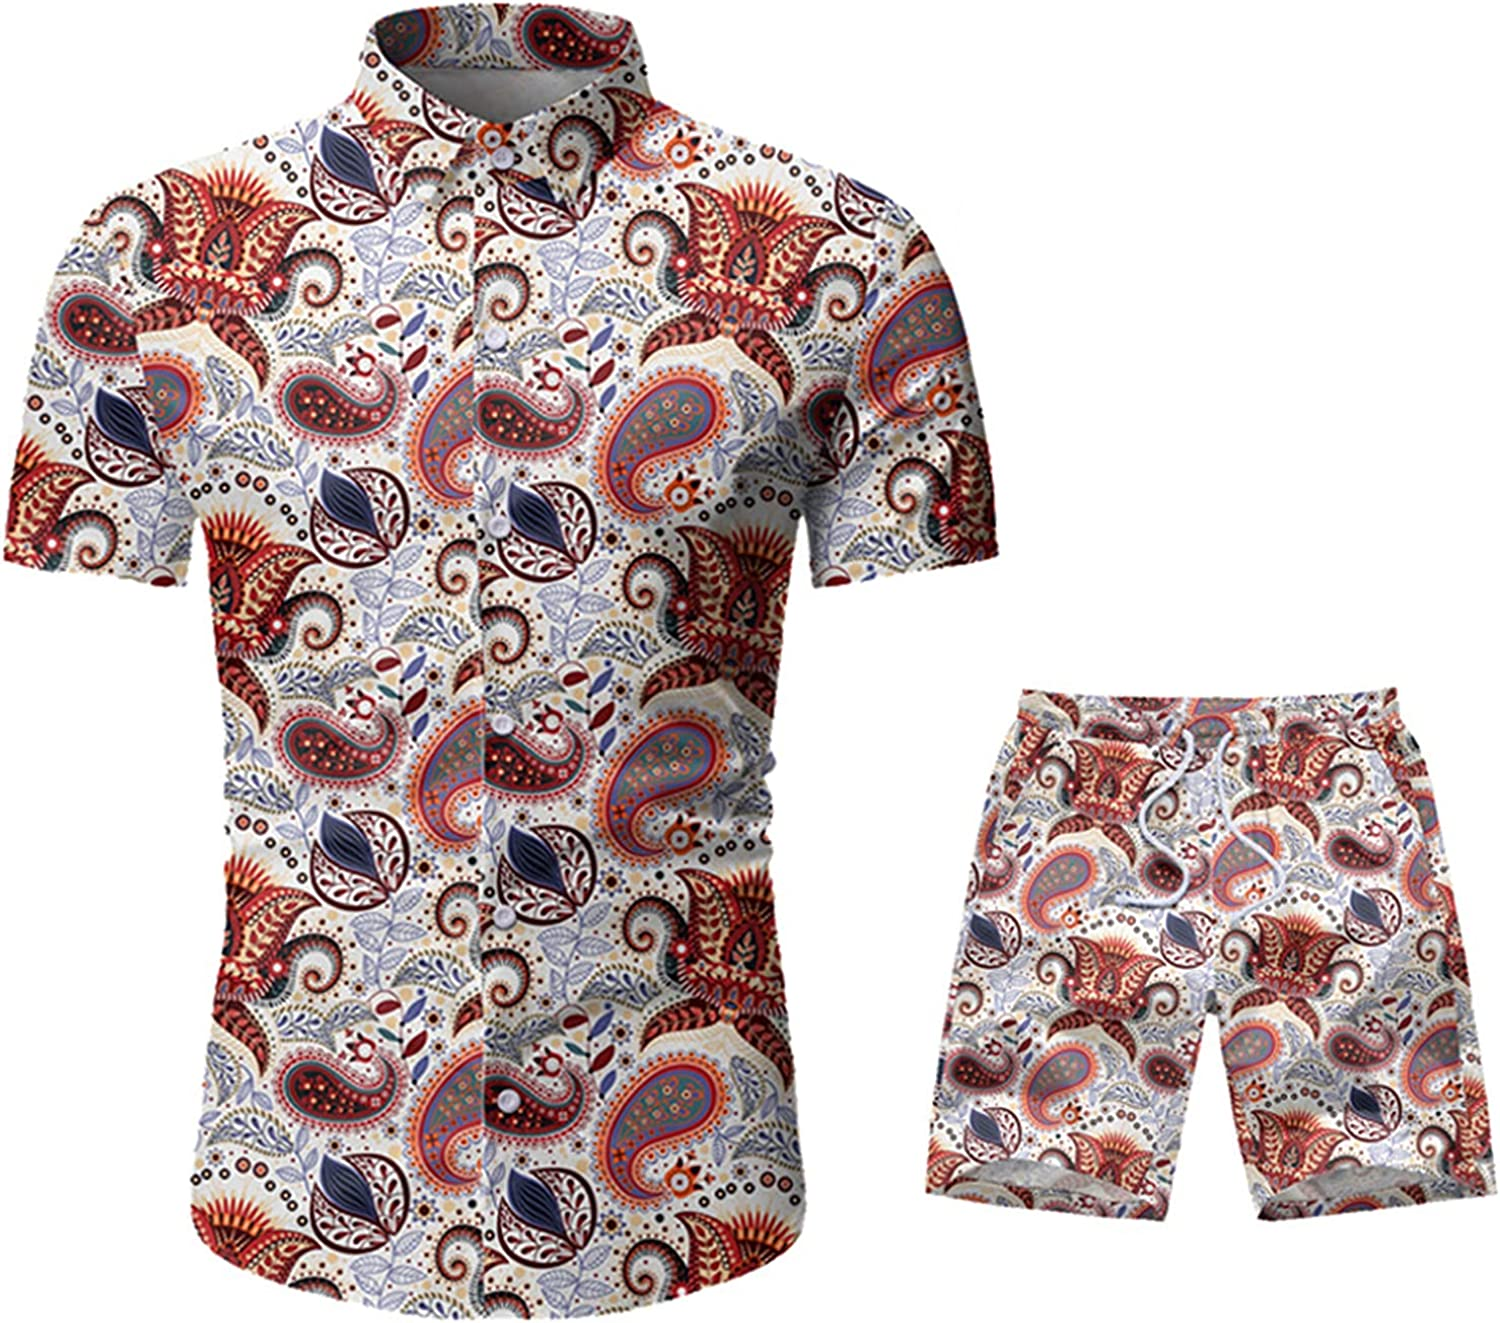 Men Summer 2-Piece Beach Hawaiian Sets Fashion Printed Casual Suits Tropical Beach Short-Sleeved Outfit Suits